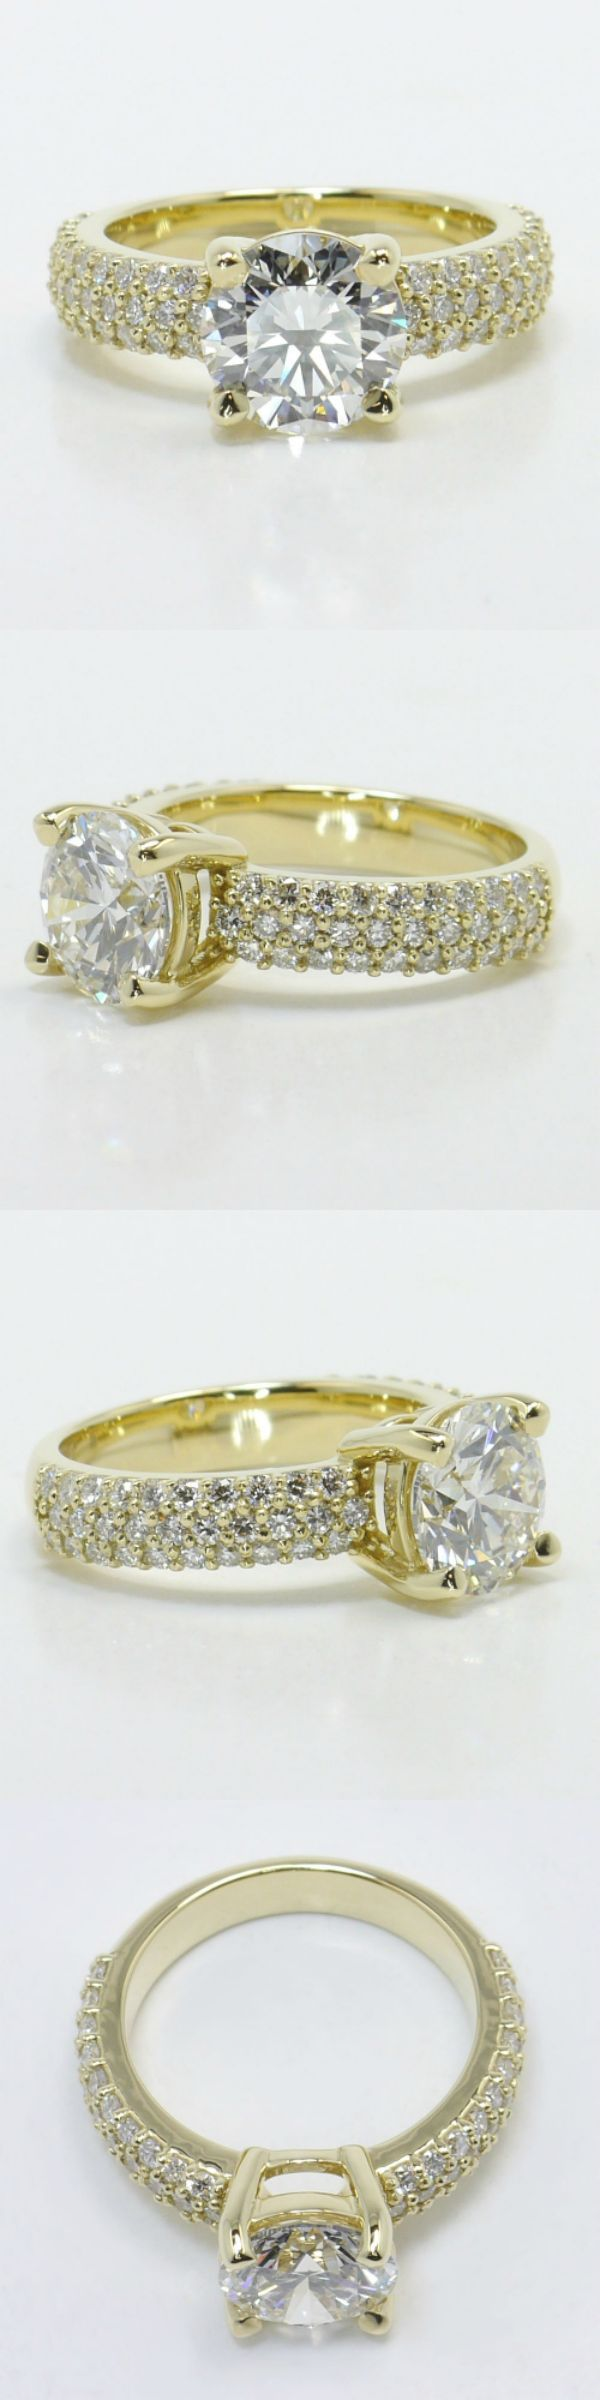 Yellow Gold Pave Diamond Ring by Brilliance.com! (Round 1.84 Ctw. Color: I Clarity: VVS1 Cut: Super Ideal Certification: GIA) Diamond/Gem Cost: $12,962 (Metal: 18k Yellow Gold Side Shape: Round Side Carat: .60 Side Color: G Side Clarity: SI1 Side Cut: Exellent Setting Type: Pave) Setting Cost: $1,450 - Total Cost: $14,612 www.brilliance.com